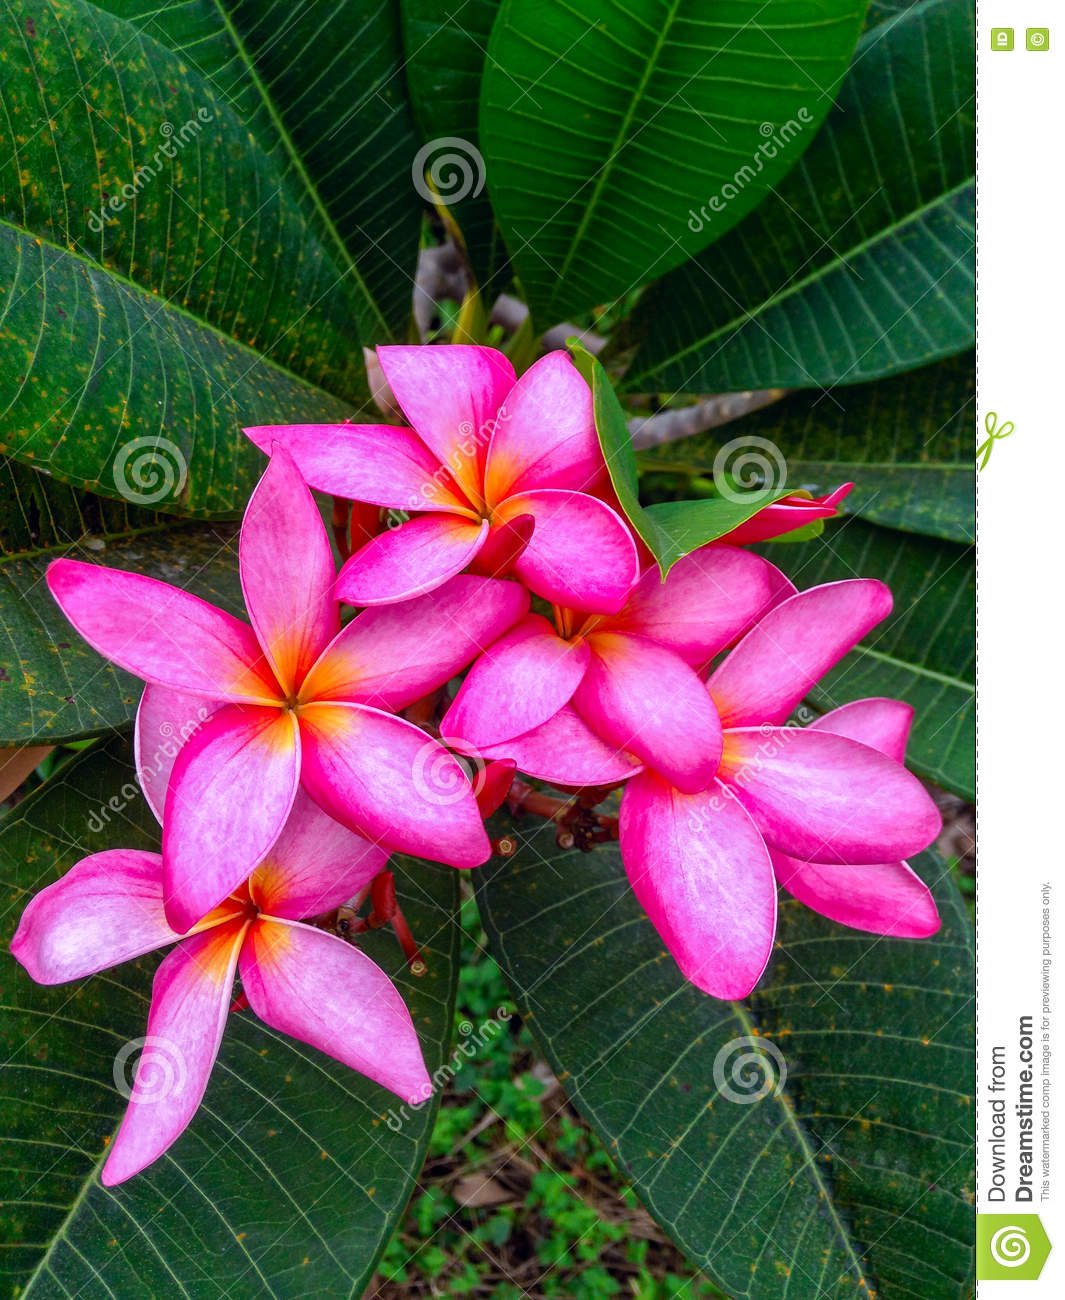 Most beautiful flowers stock image image of background 71168557 most beautiful flowers izmirmasajfo